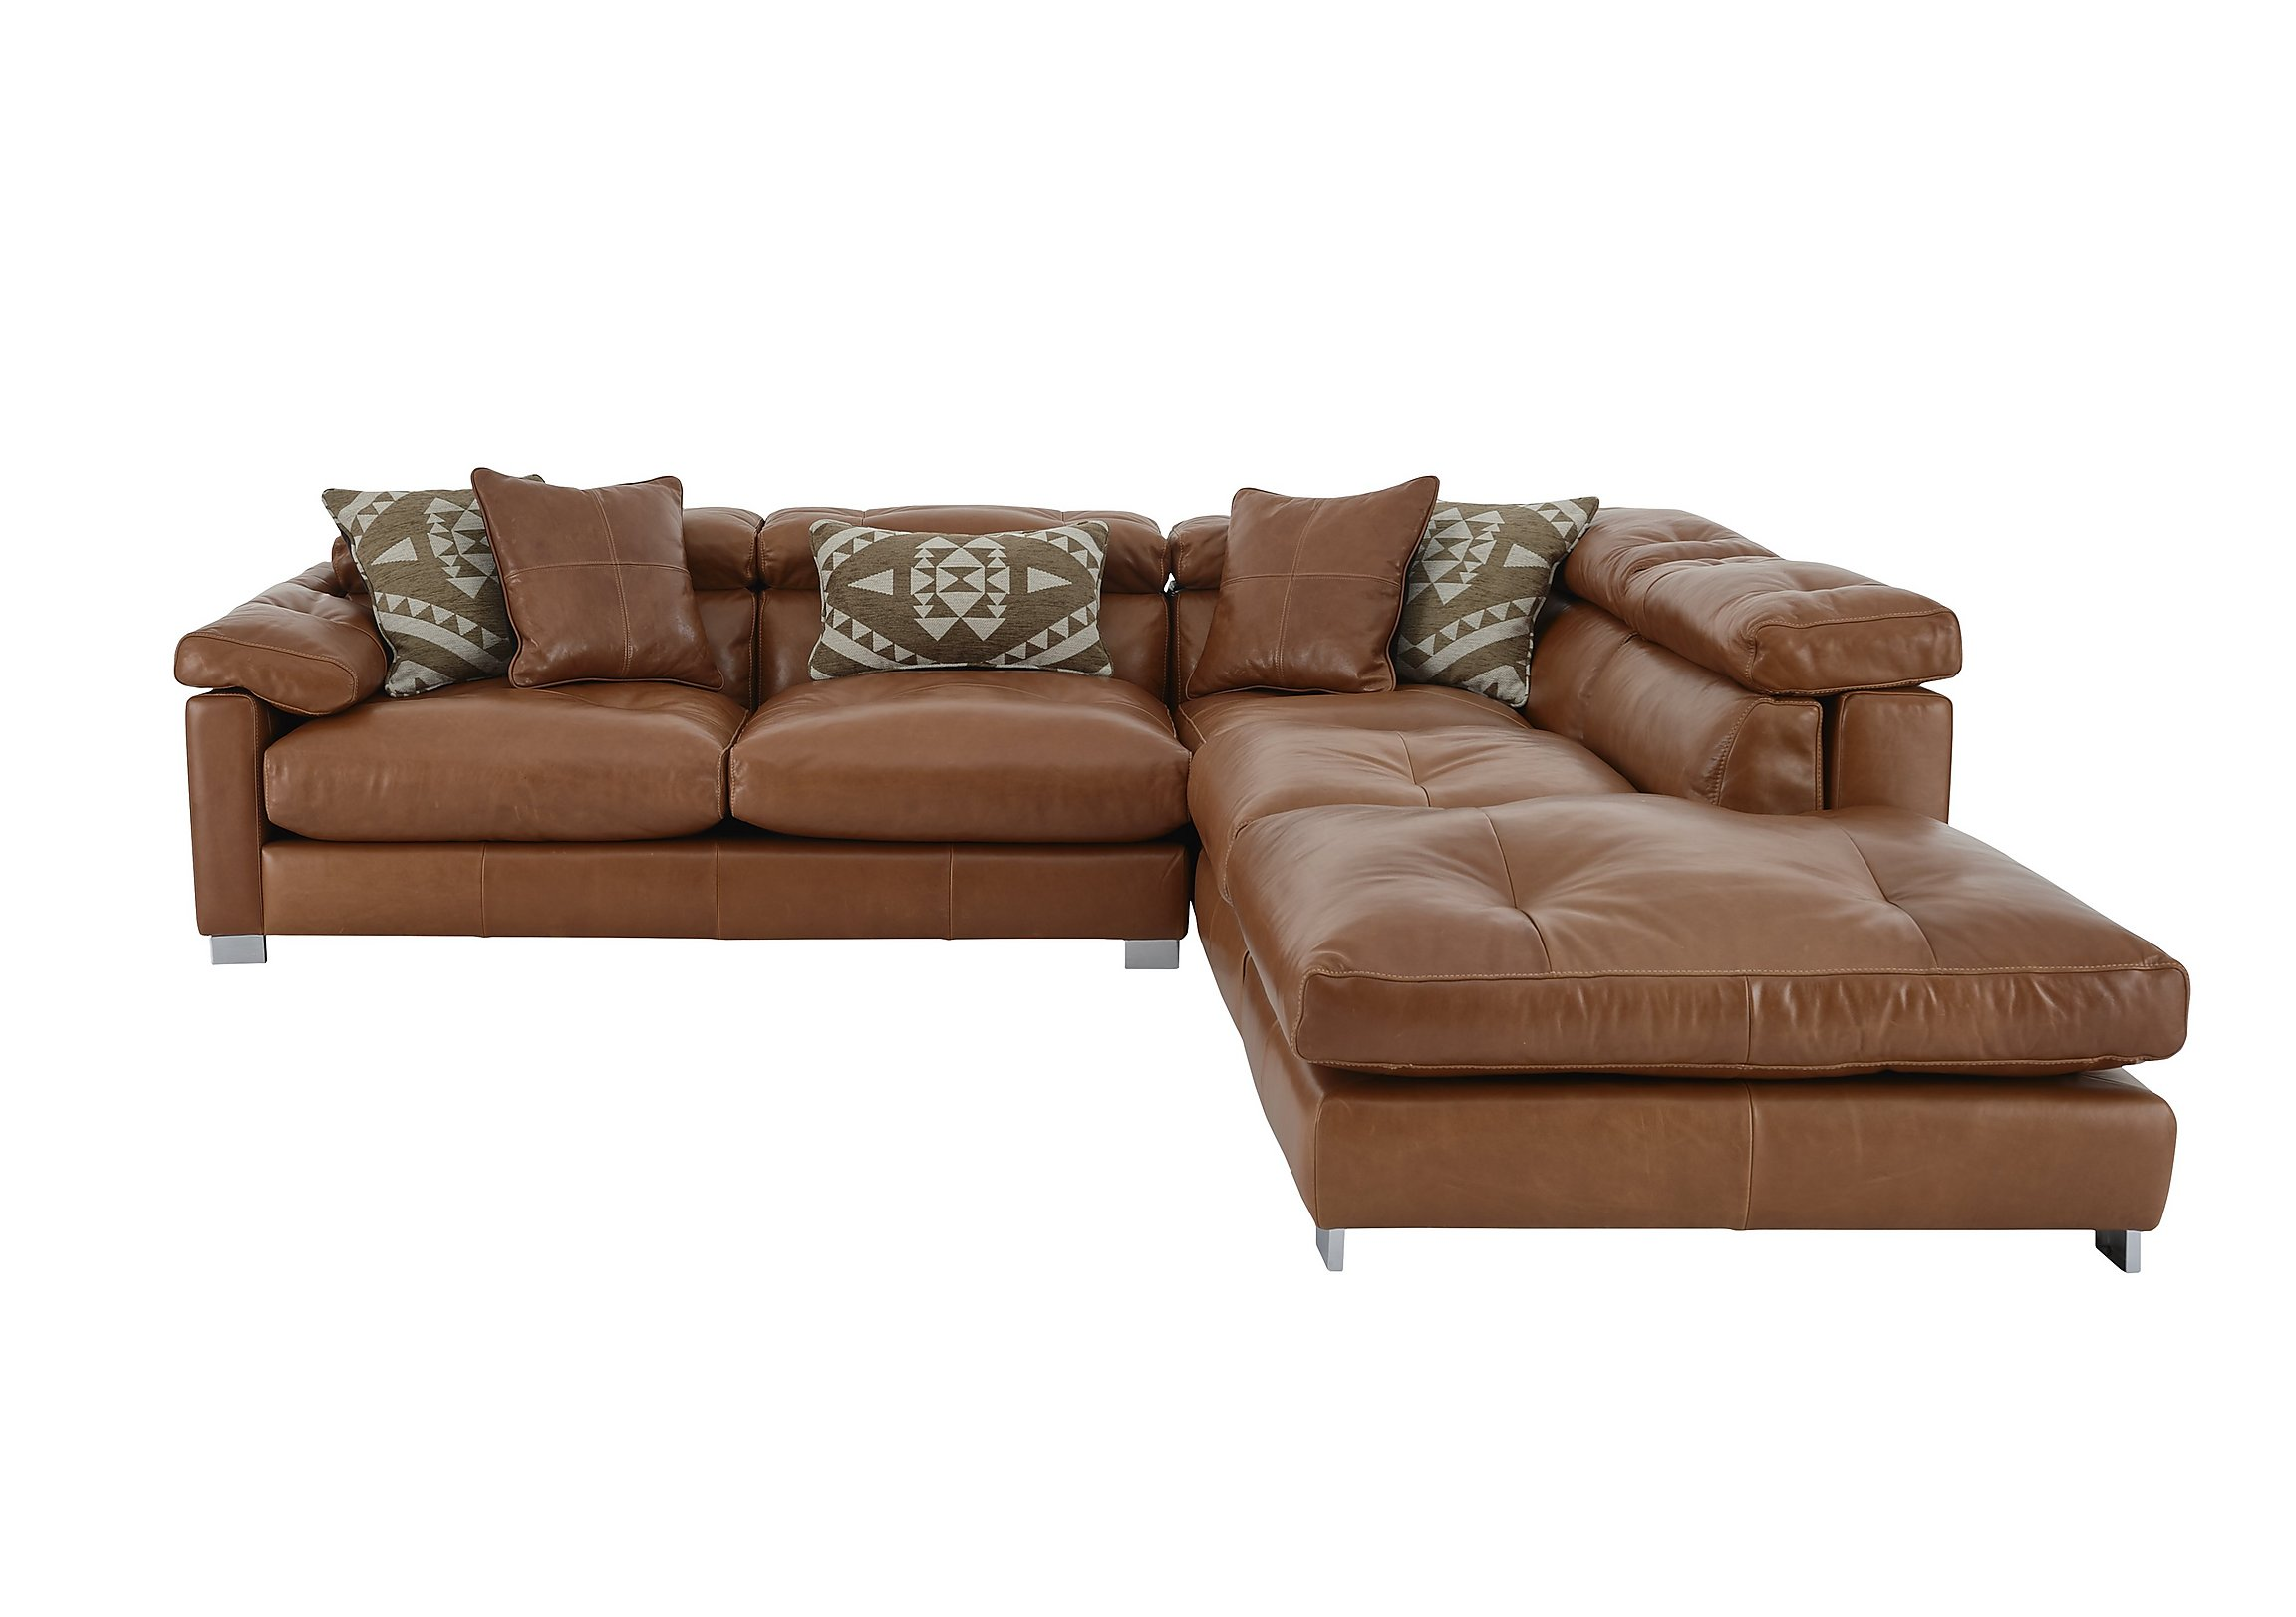 Large leather sofa bed uk for Sofa bed 200cm wide